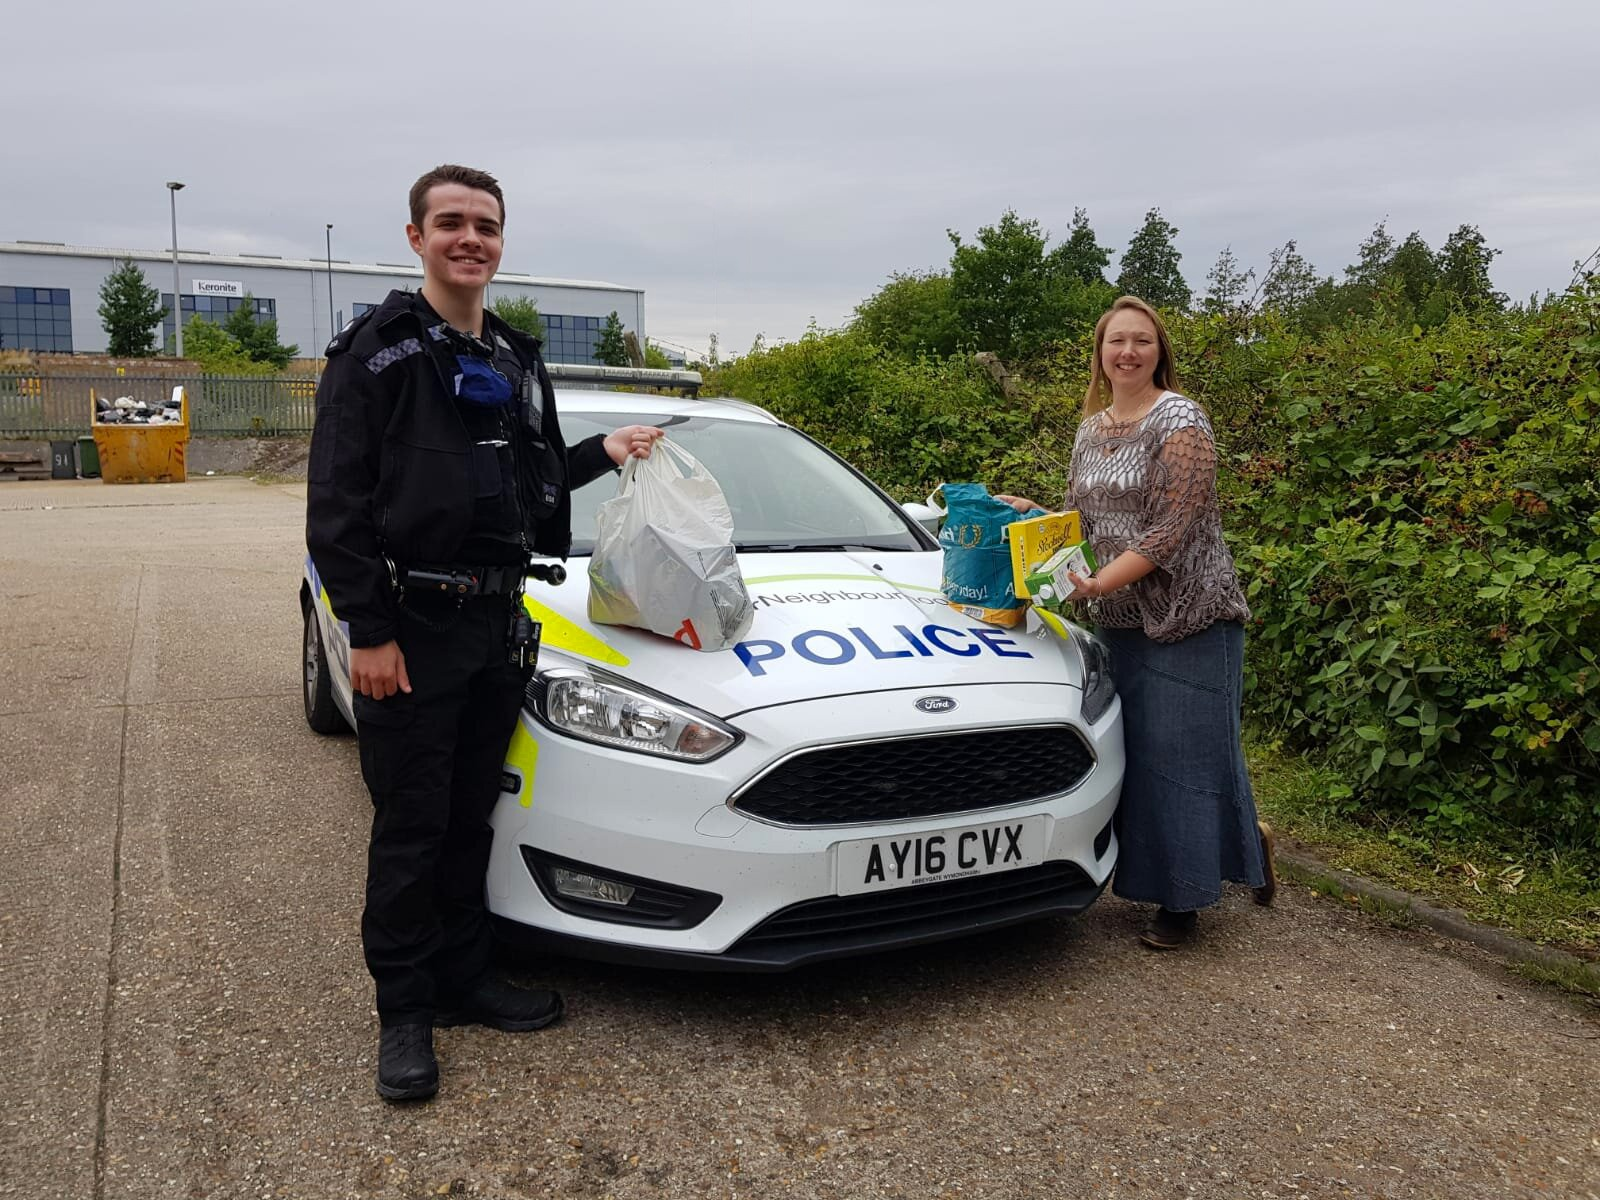 PC Tully and Justine with car